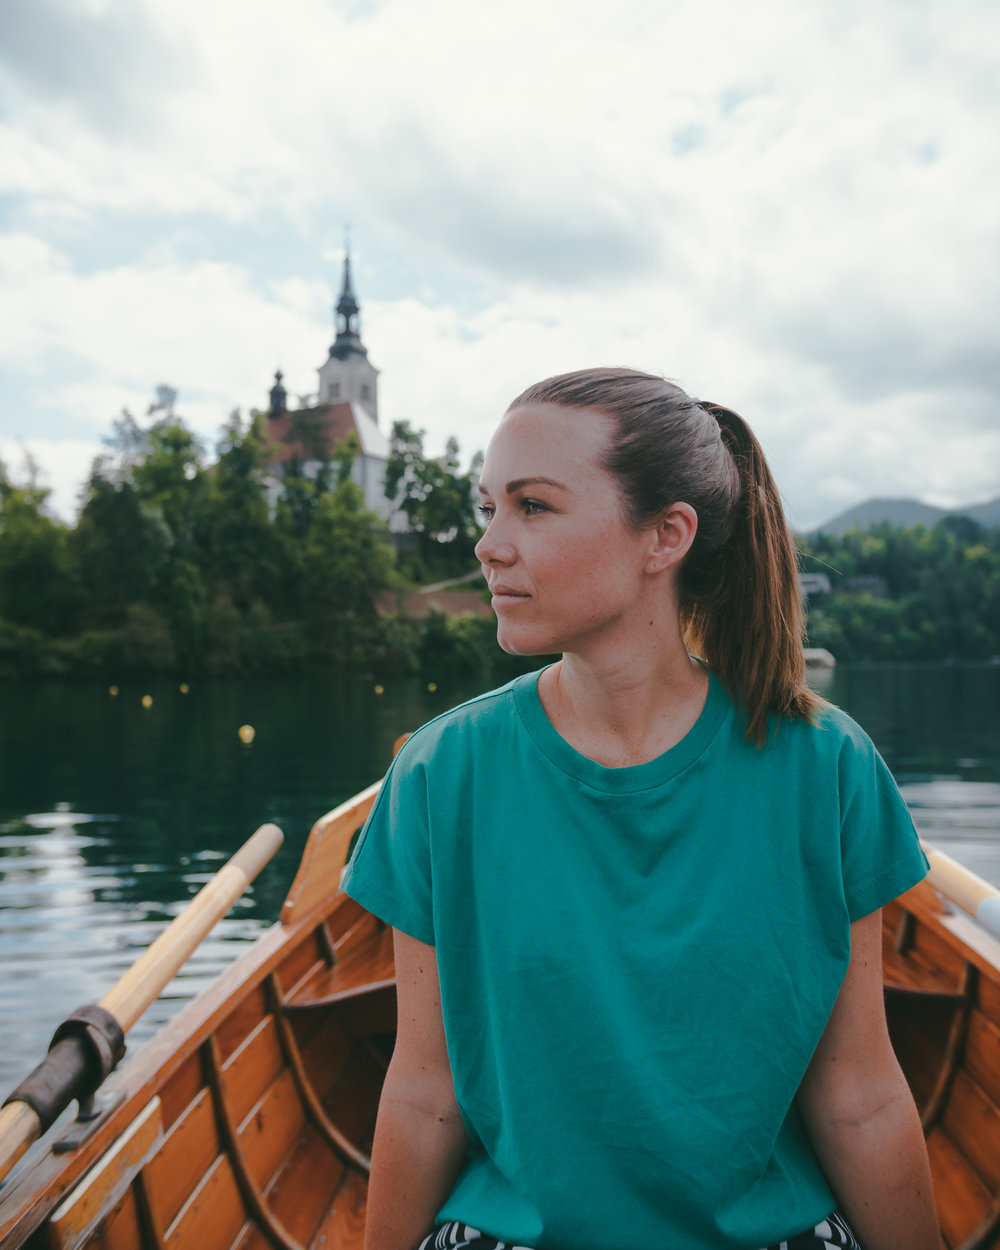 Phoebe taking in the views at Lake Bled, Slovenia, while rowing a wooden boat with her friend Boyan (Boyanoo)